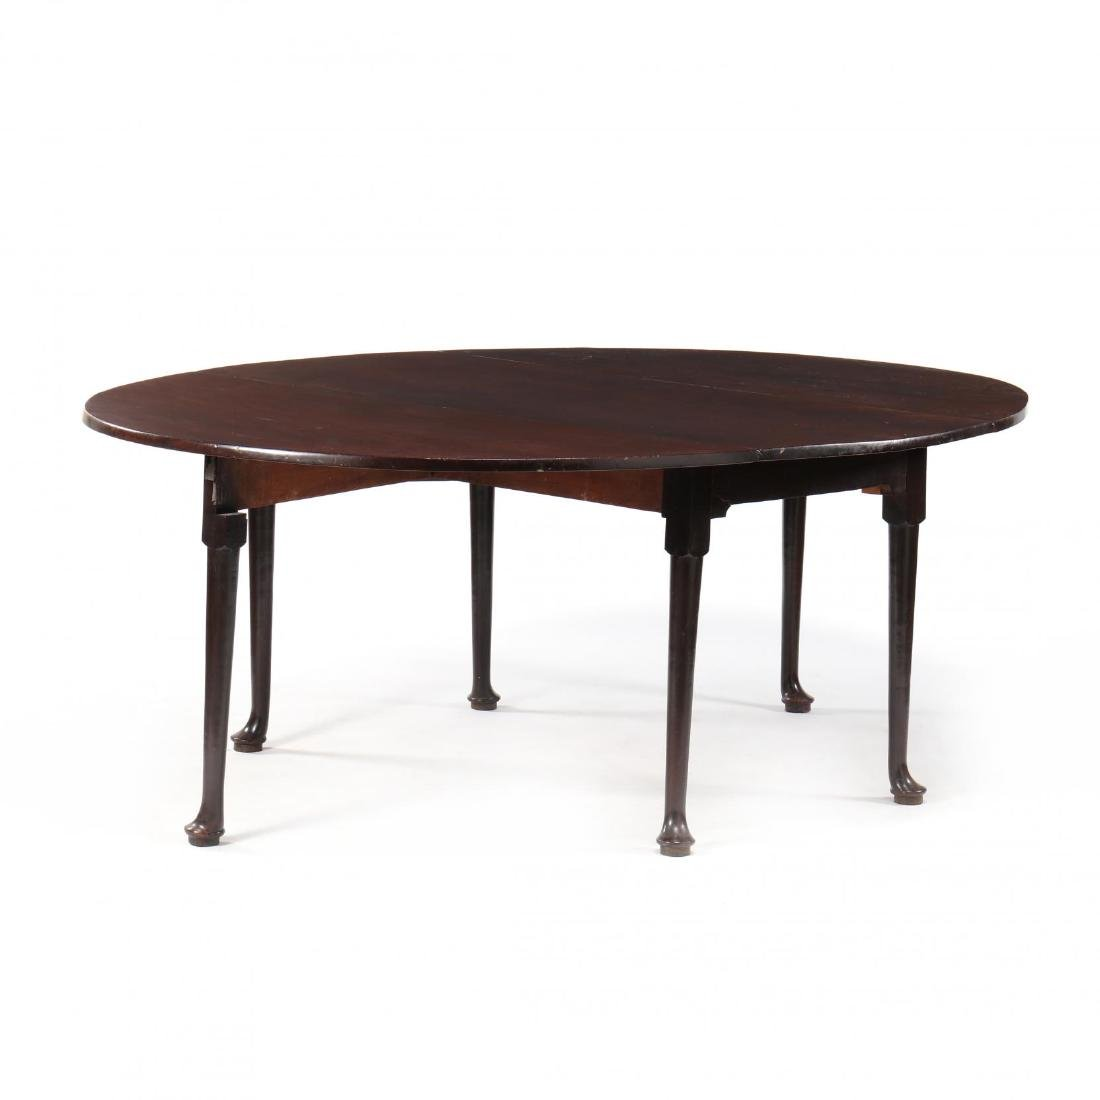 George II Mahogany Drop Leaf Dining Table - 2